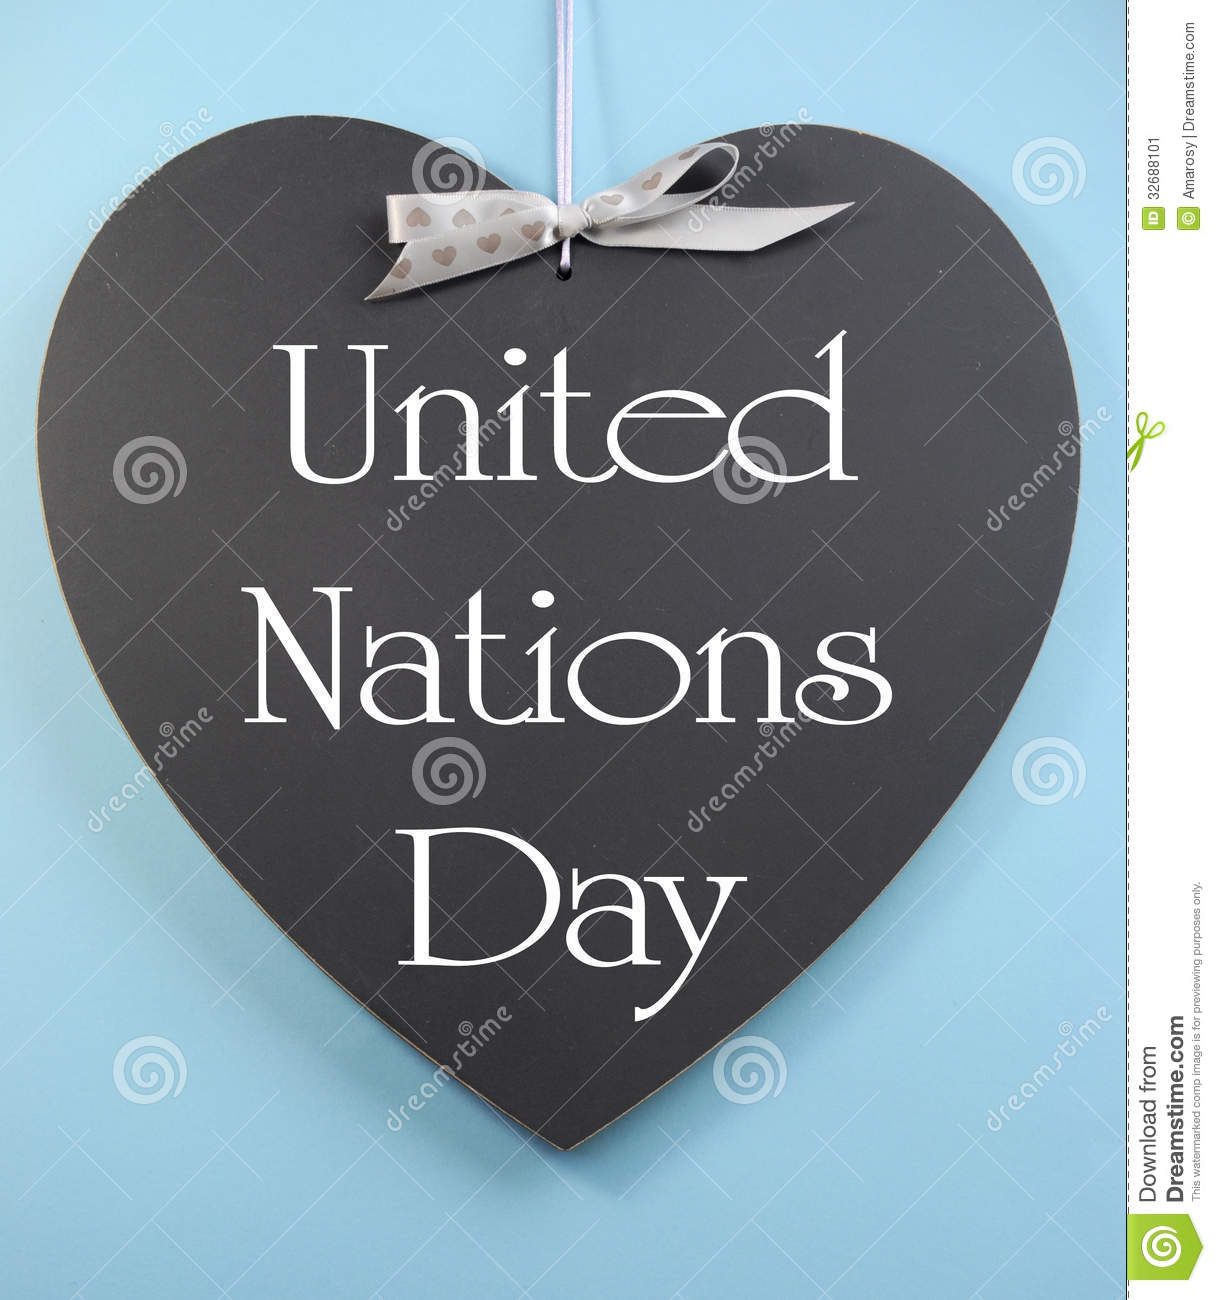 Stock Image  United Nations Day Text Message Greeting Written On Heart